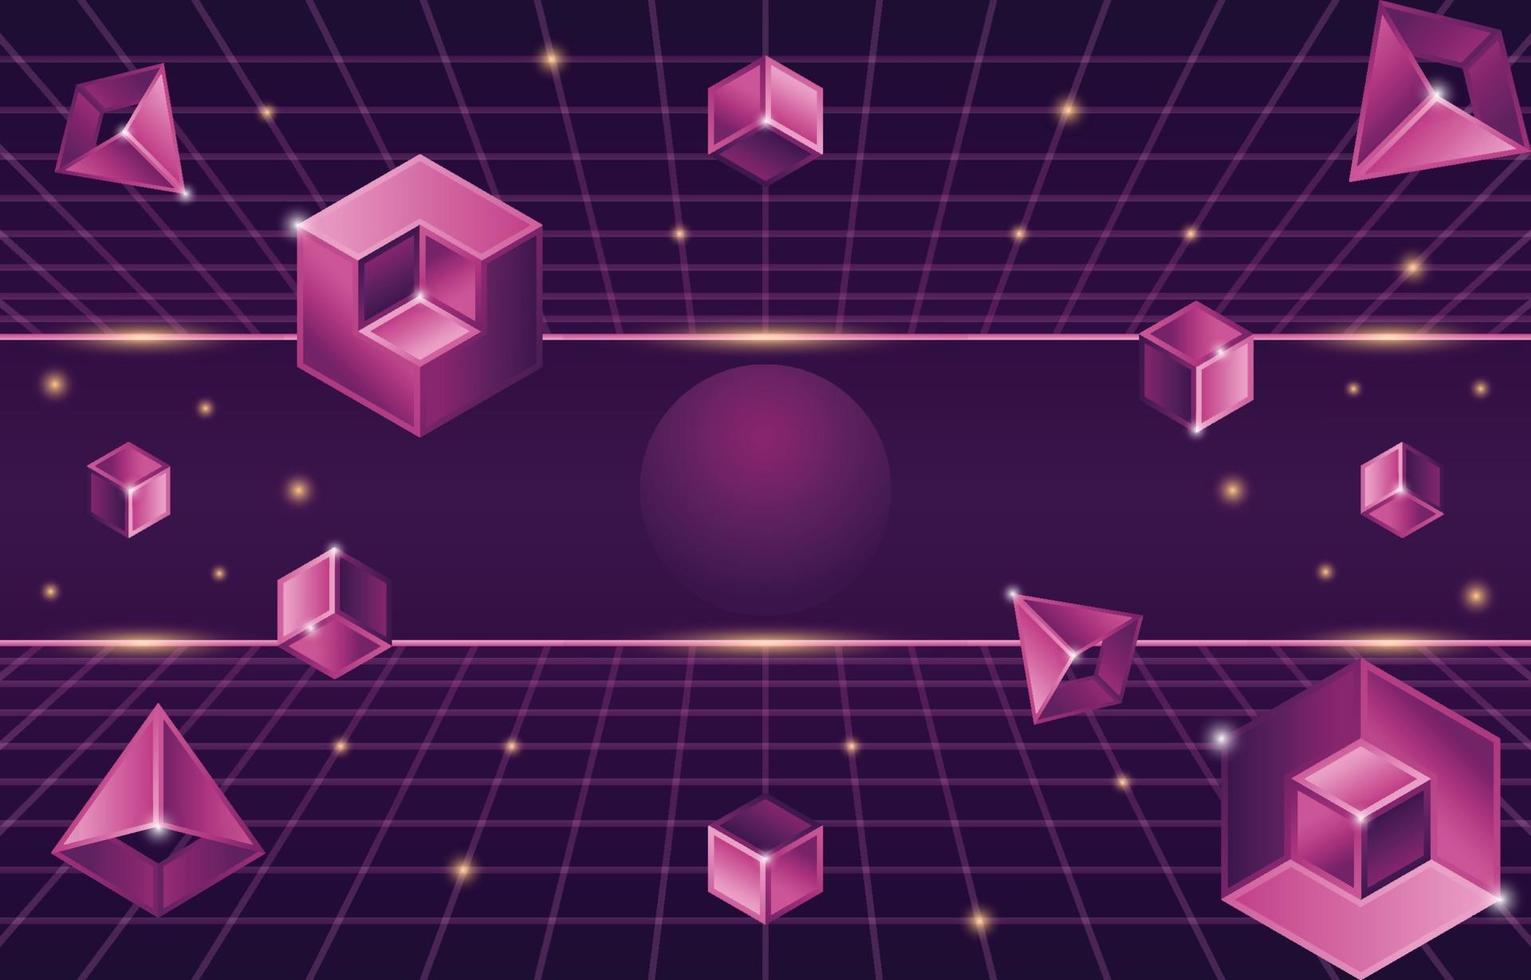 Retro Futurism Background with Geometric 3D Elements vector